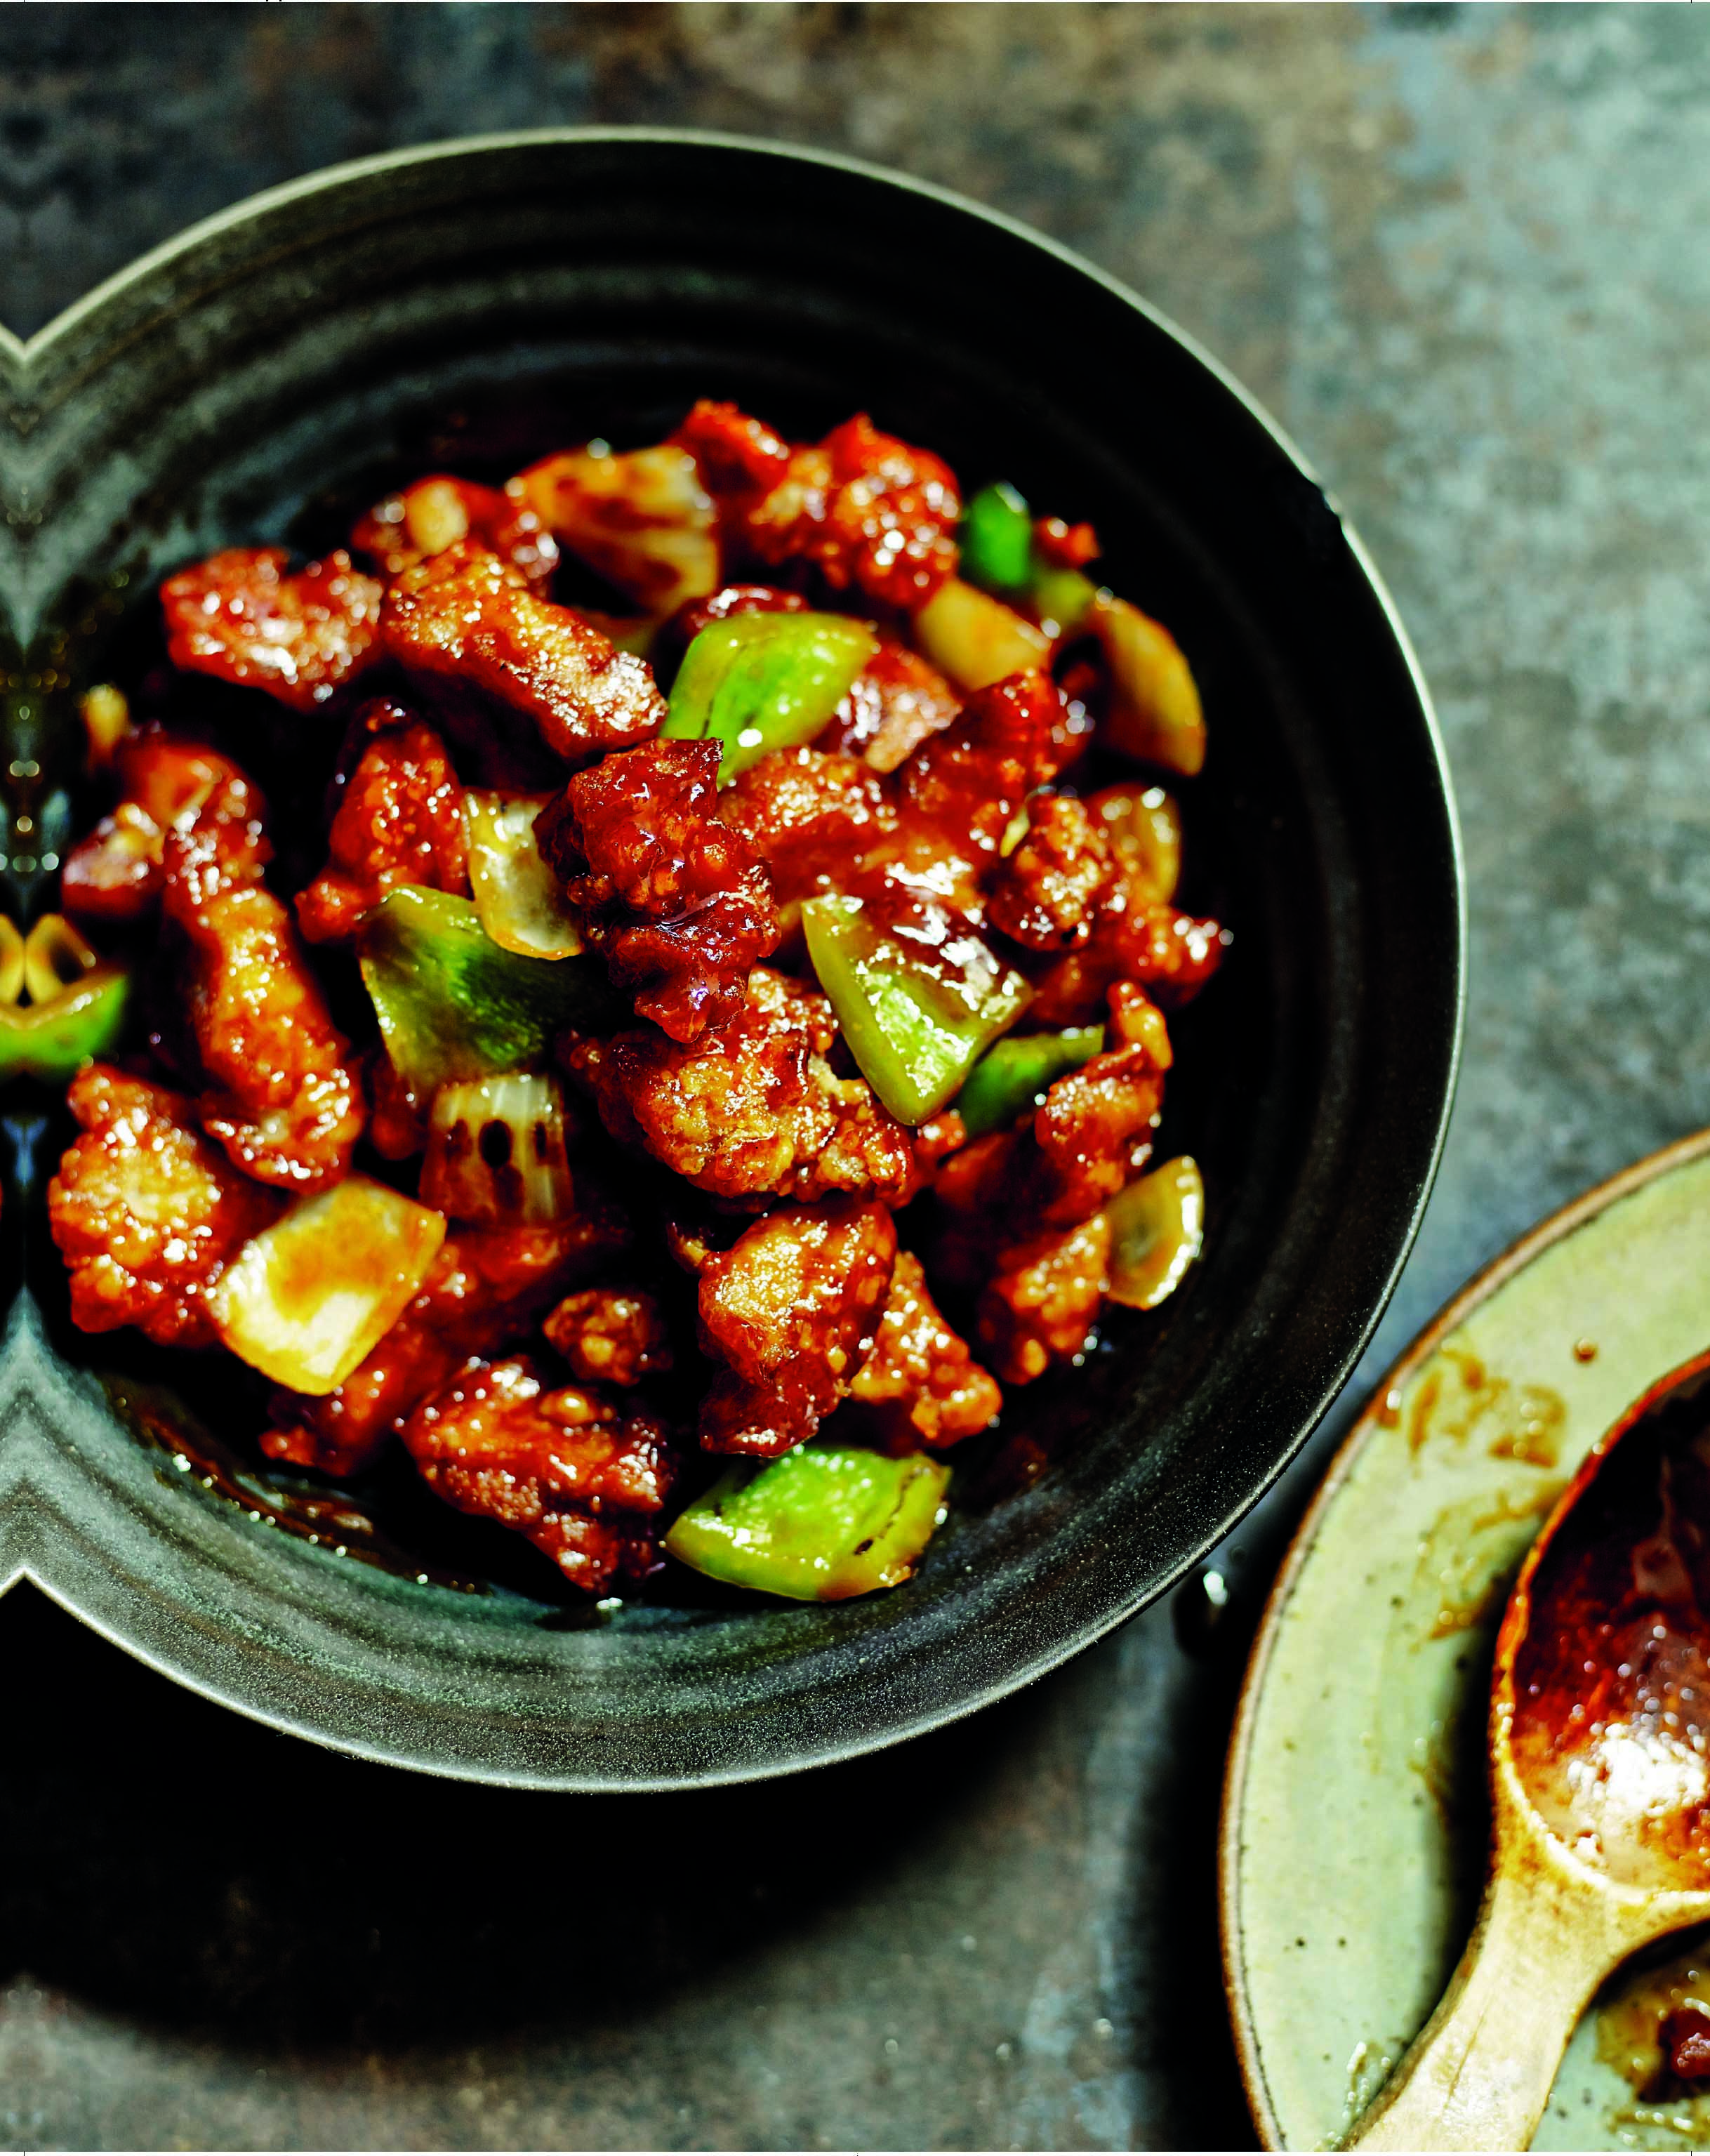 Classic sweet-and-sour pork